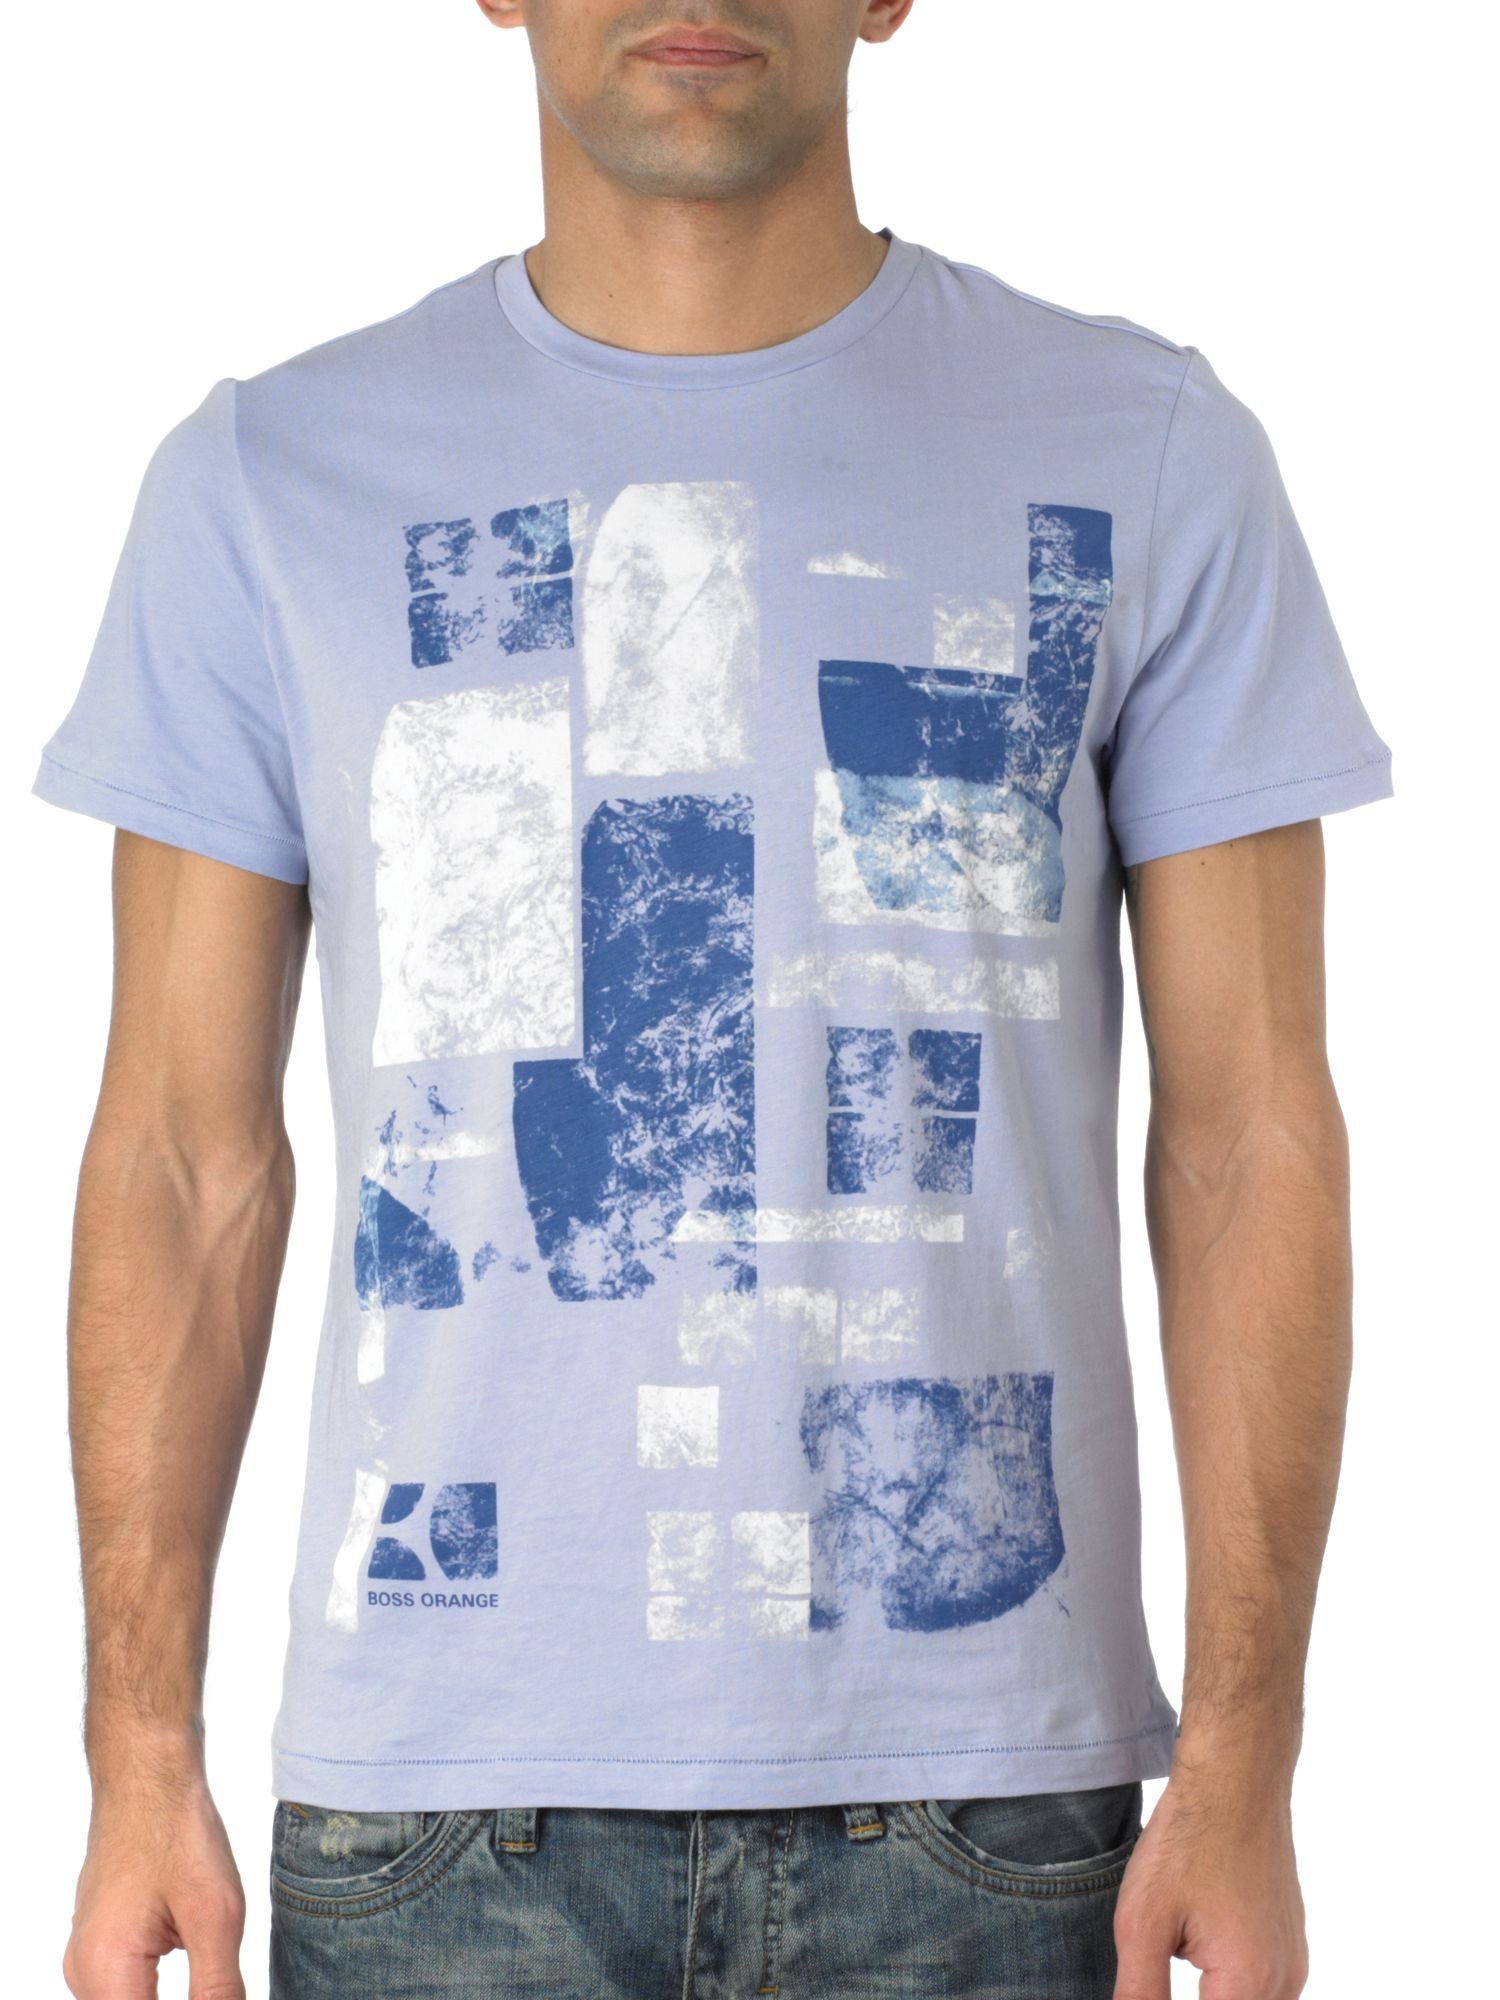 Hugo Boss Abstract logo t-shirt product image